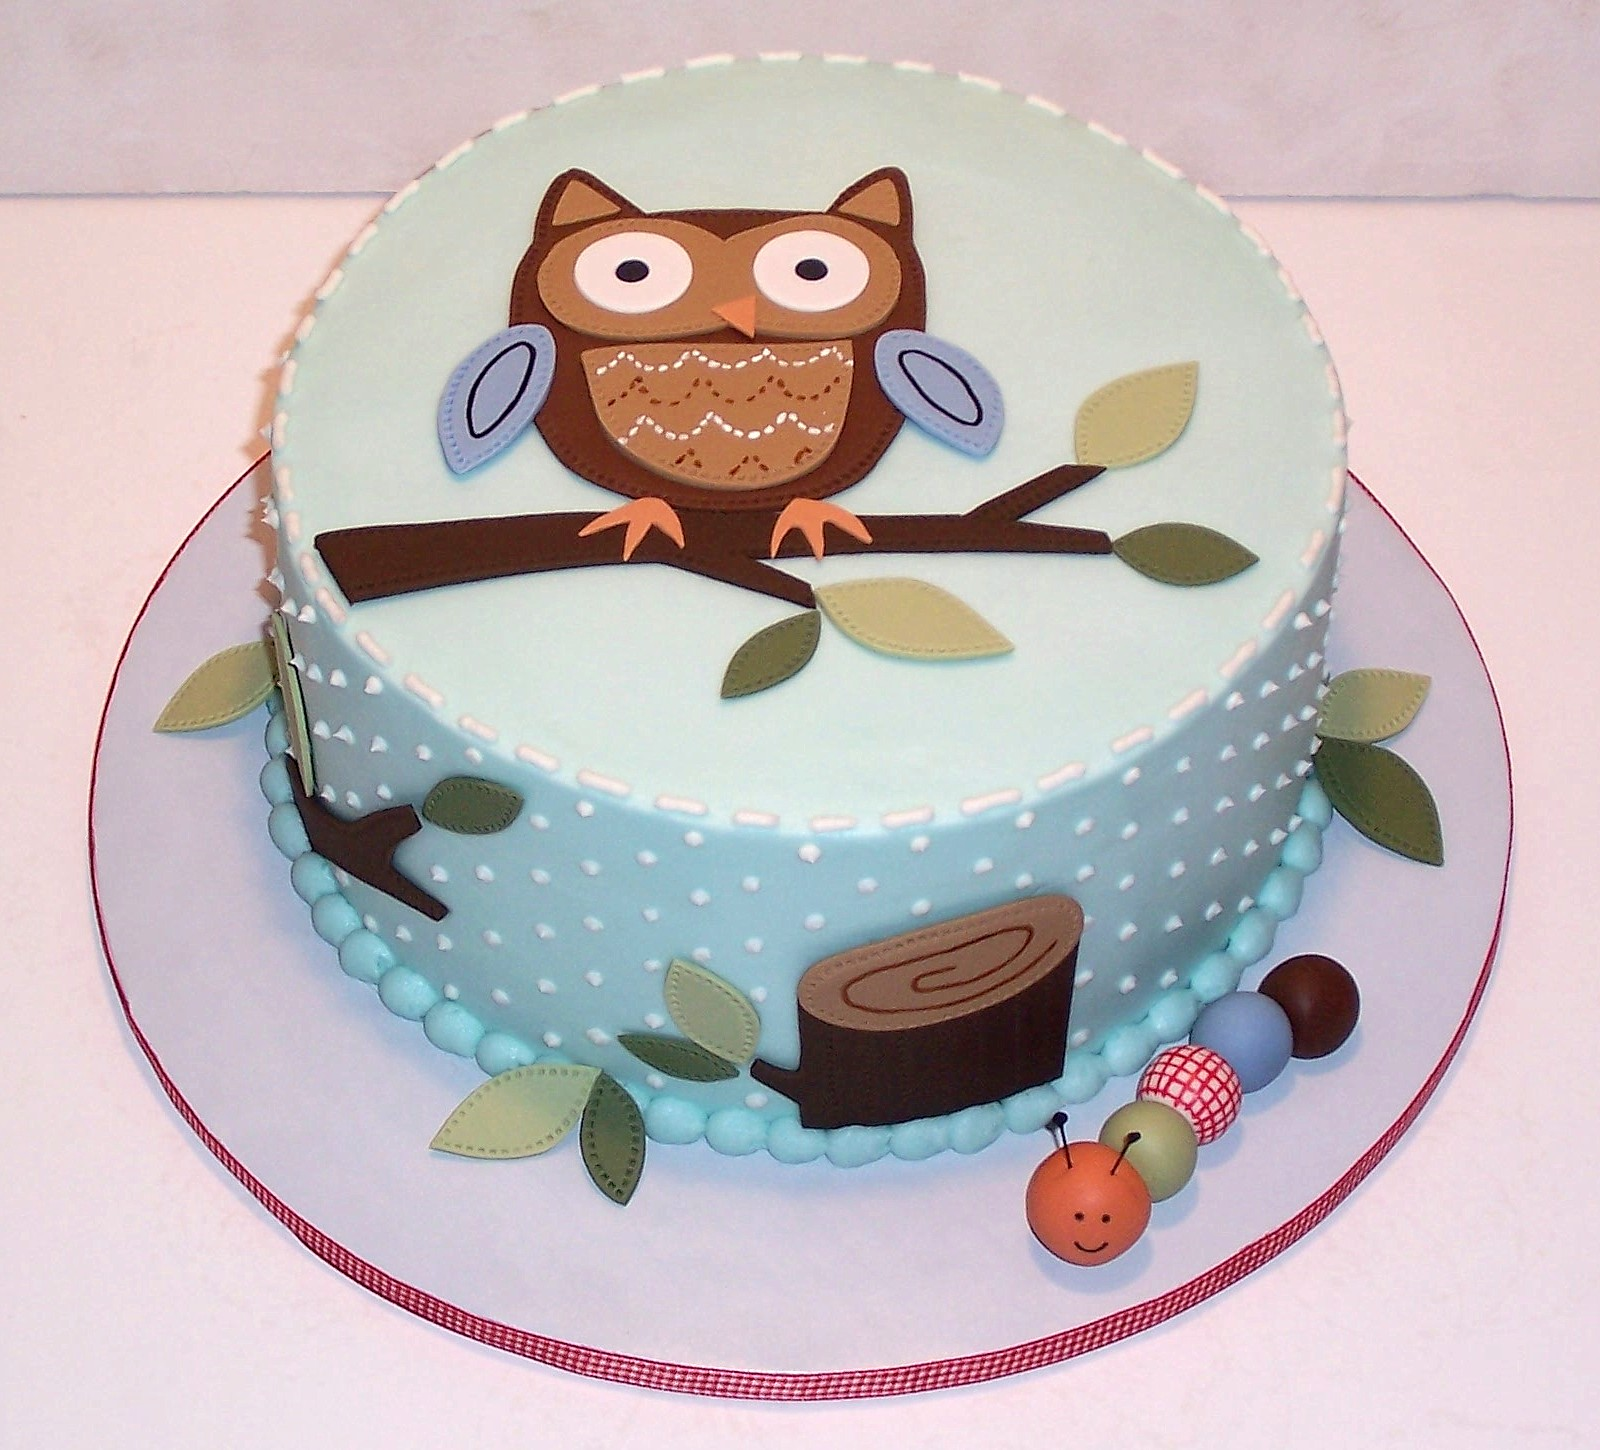 Cake Decorating Ideas Baby Shower : Baby Shower Cakes: Baby Shower Cake Ideas Owls